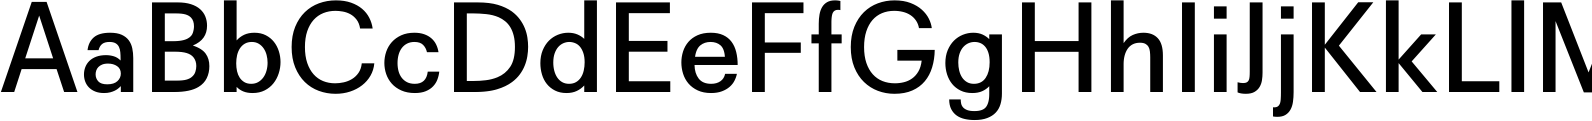 Recta Medium Font